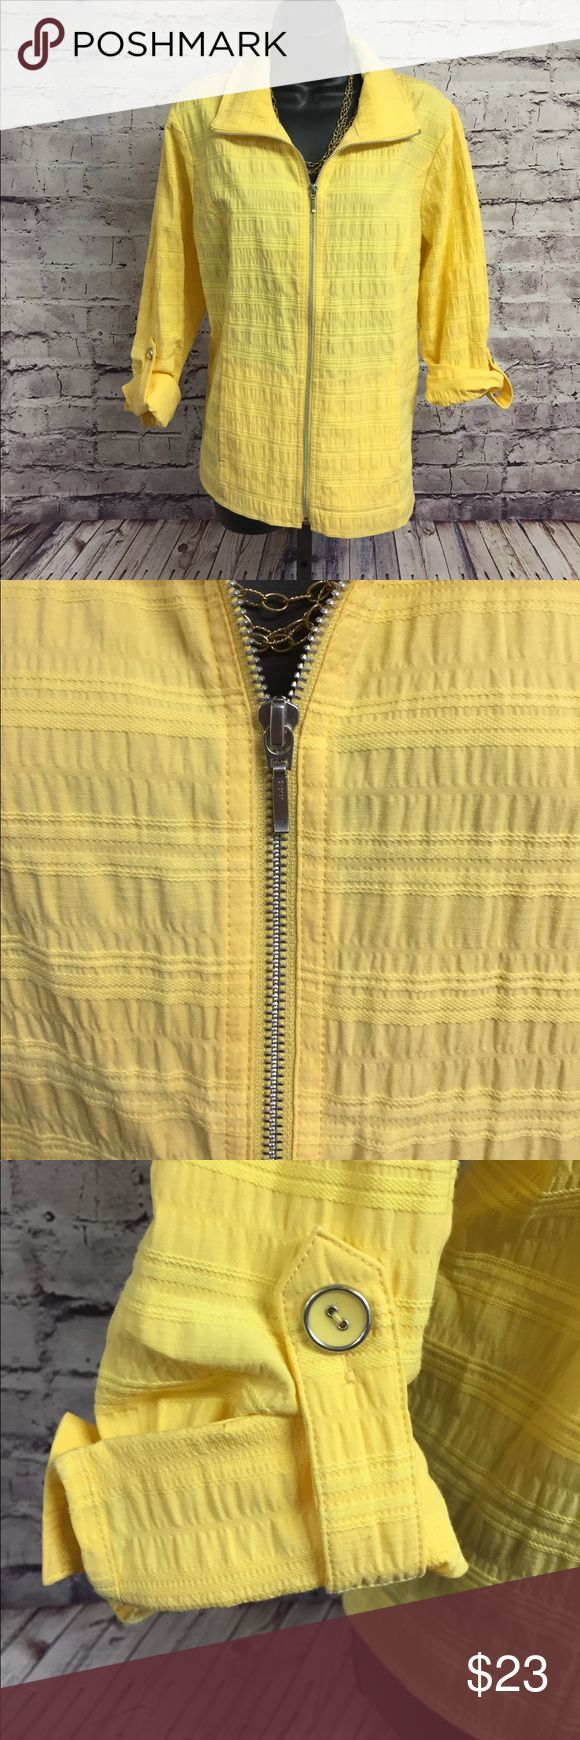 Christopher and banks petite zip up jacket XL Bright and sunshiny yellow Christopher and banks petite women's jacket. Size petite extra-large. 52% cotton 47% polyester 1% spandex. Machine wash cold. sleeve length fully extended 16 inches.  Armpit to hem 15 inches Lightweight and great for summer. Fast shipping and bundle discounts available. Christopher & Banks Jackets & Coats